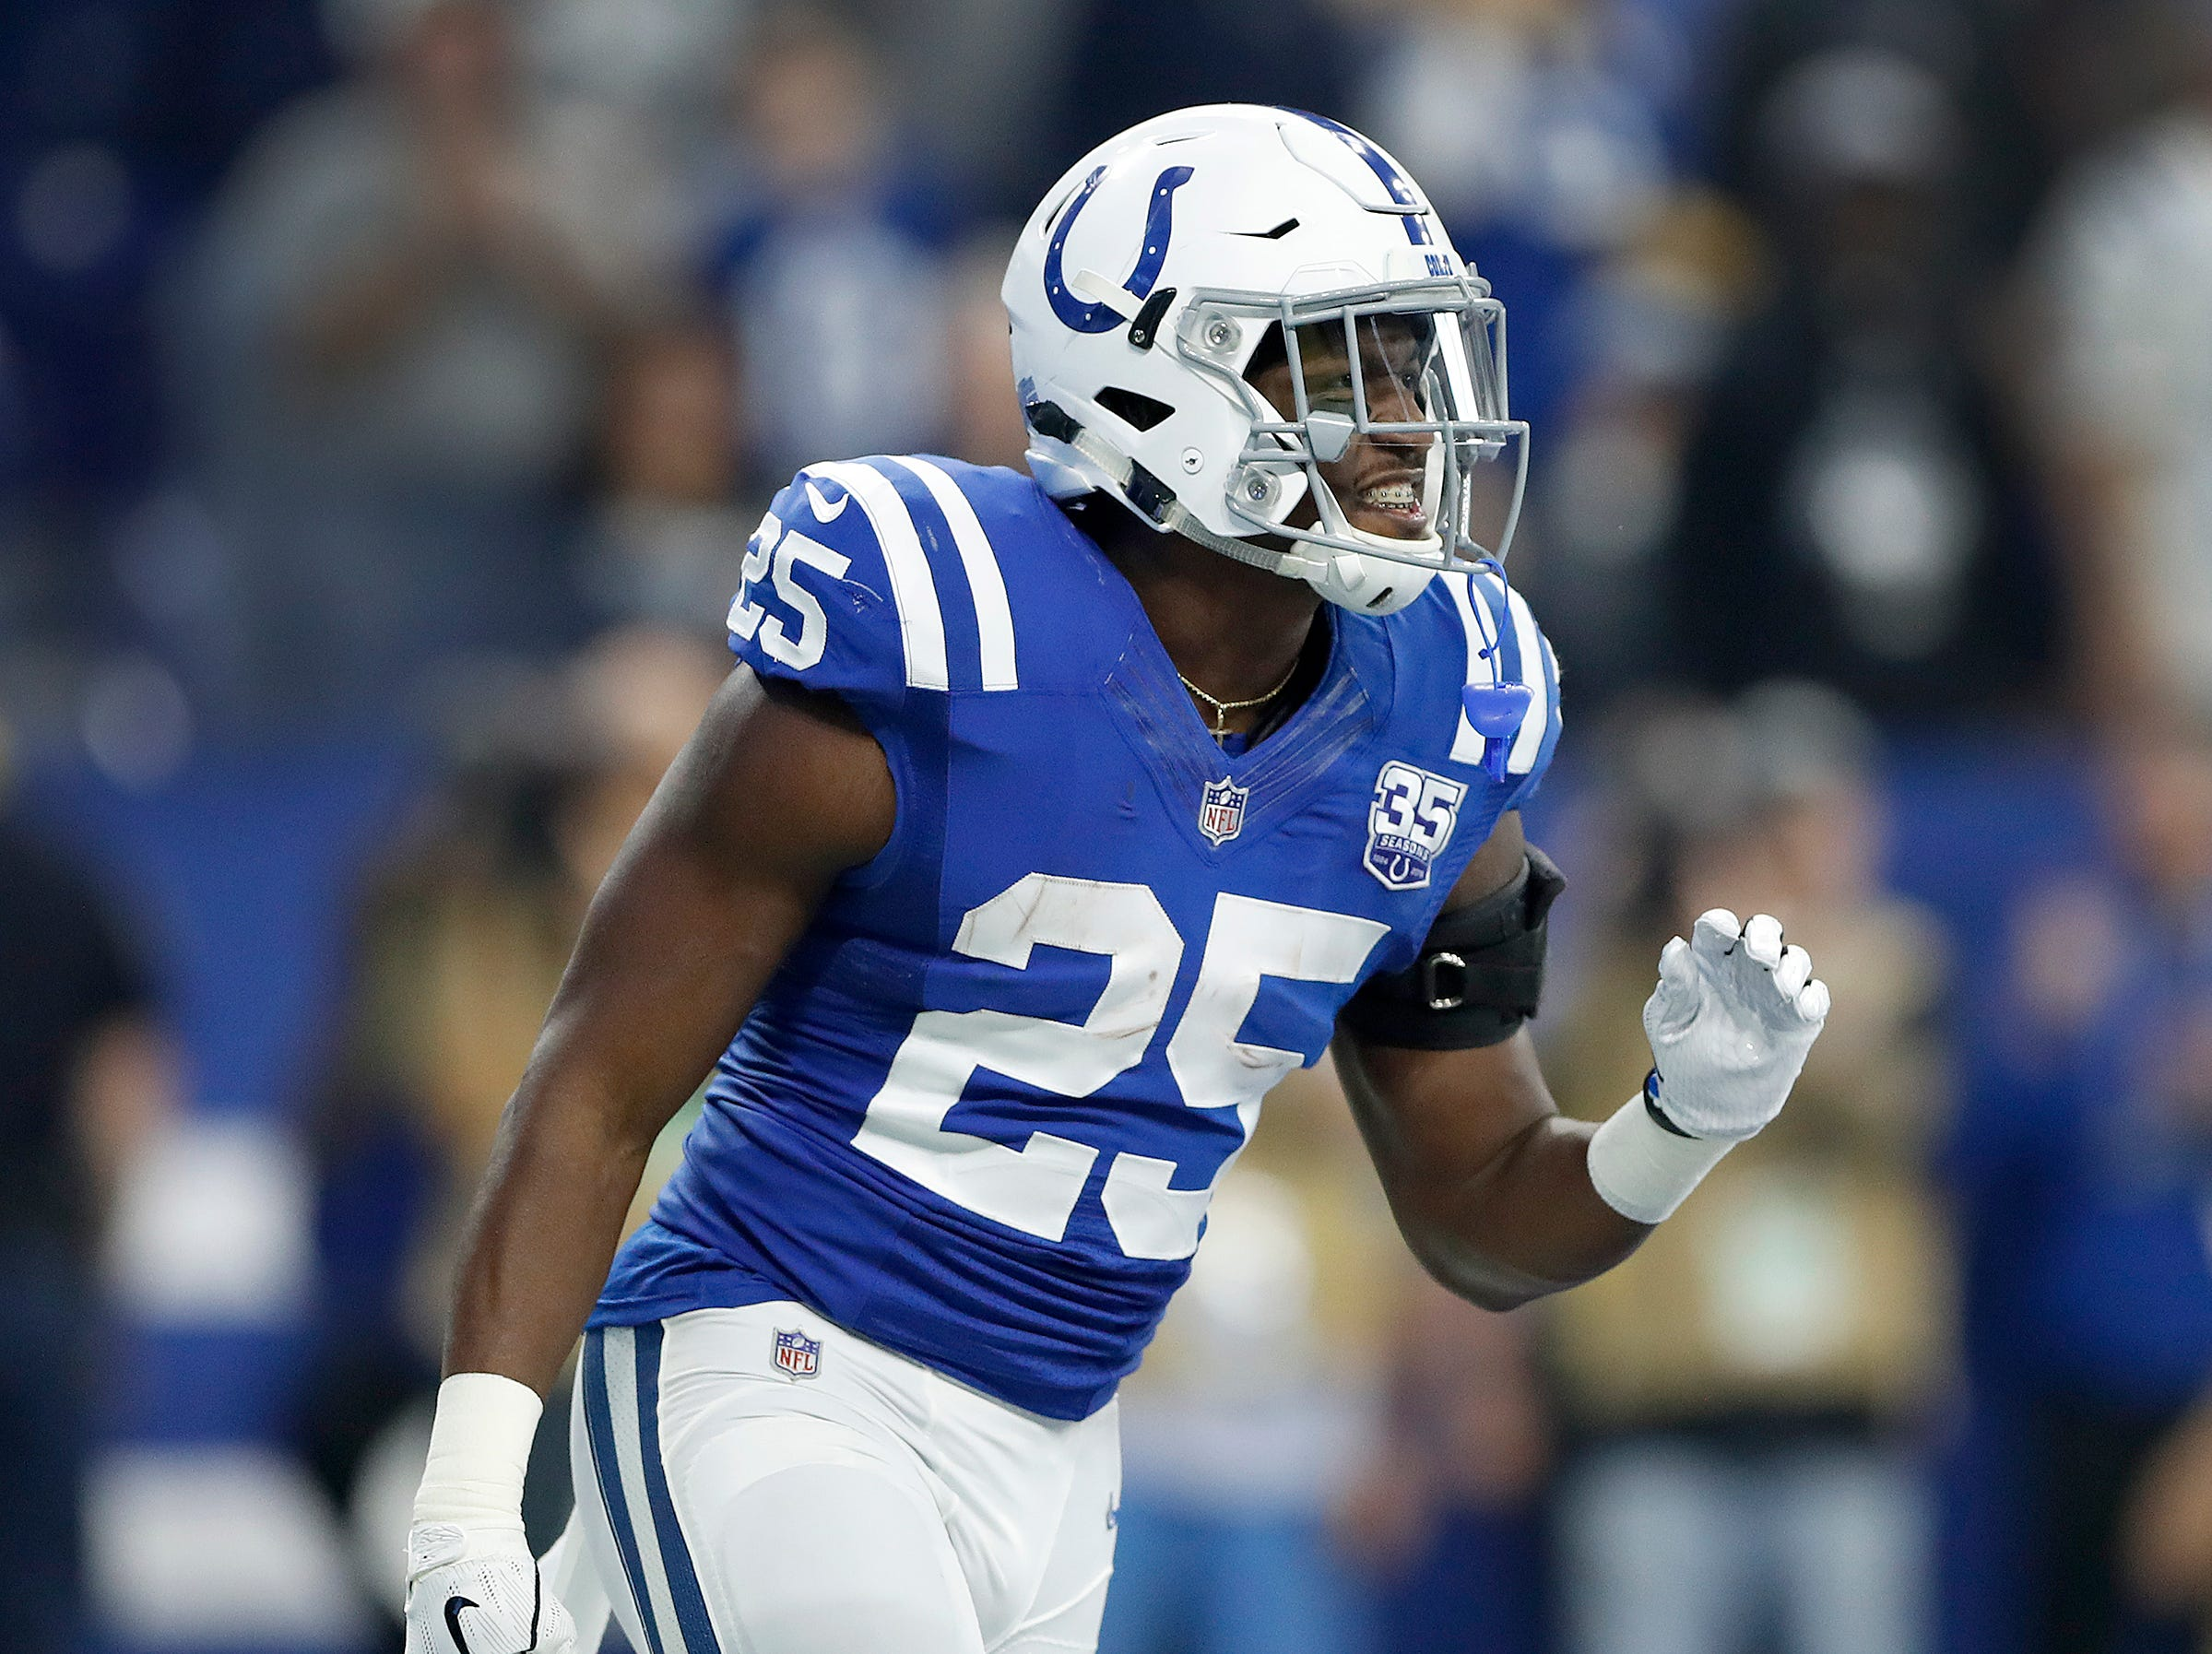 Indianapolis Colts running back Marlon Mack (25) celebrates making it into the end zone in the first half of their game at Lucas Oil Stadium on Sunday, Dec. 16, 2018.